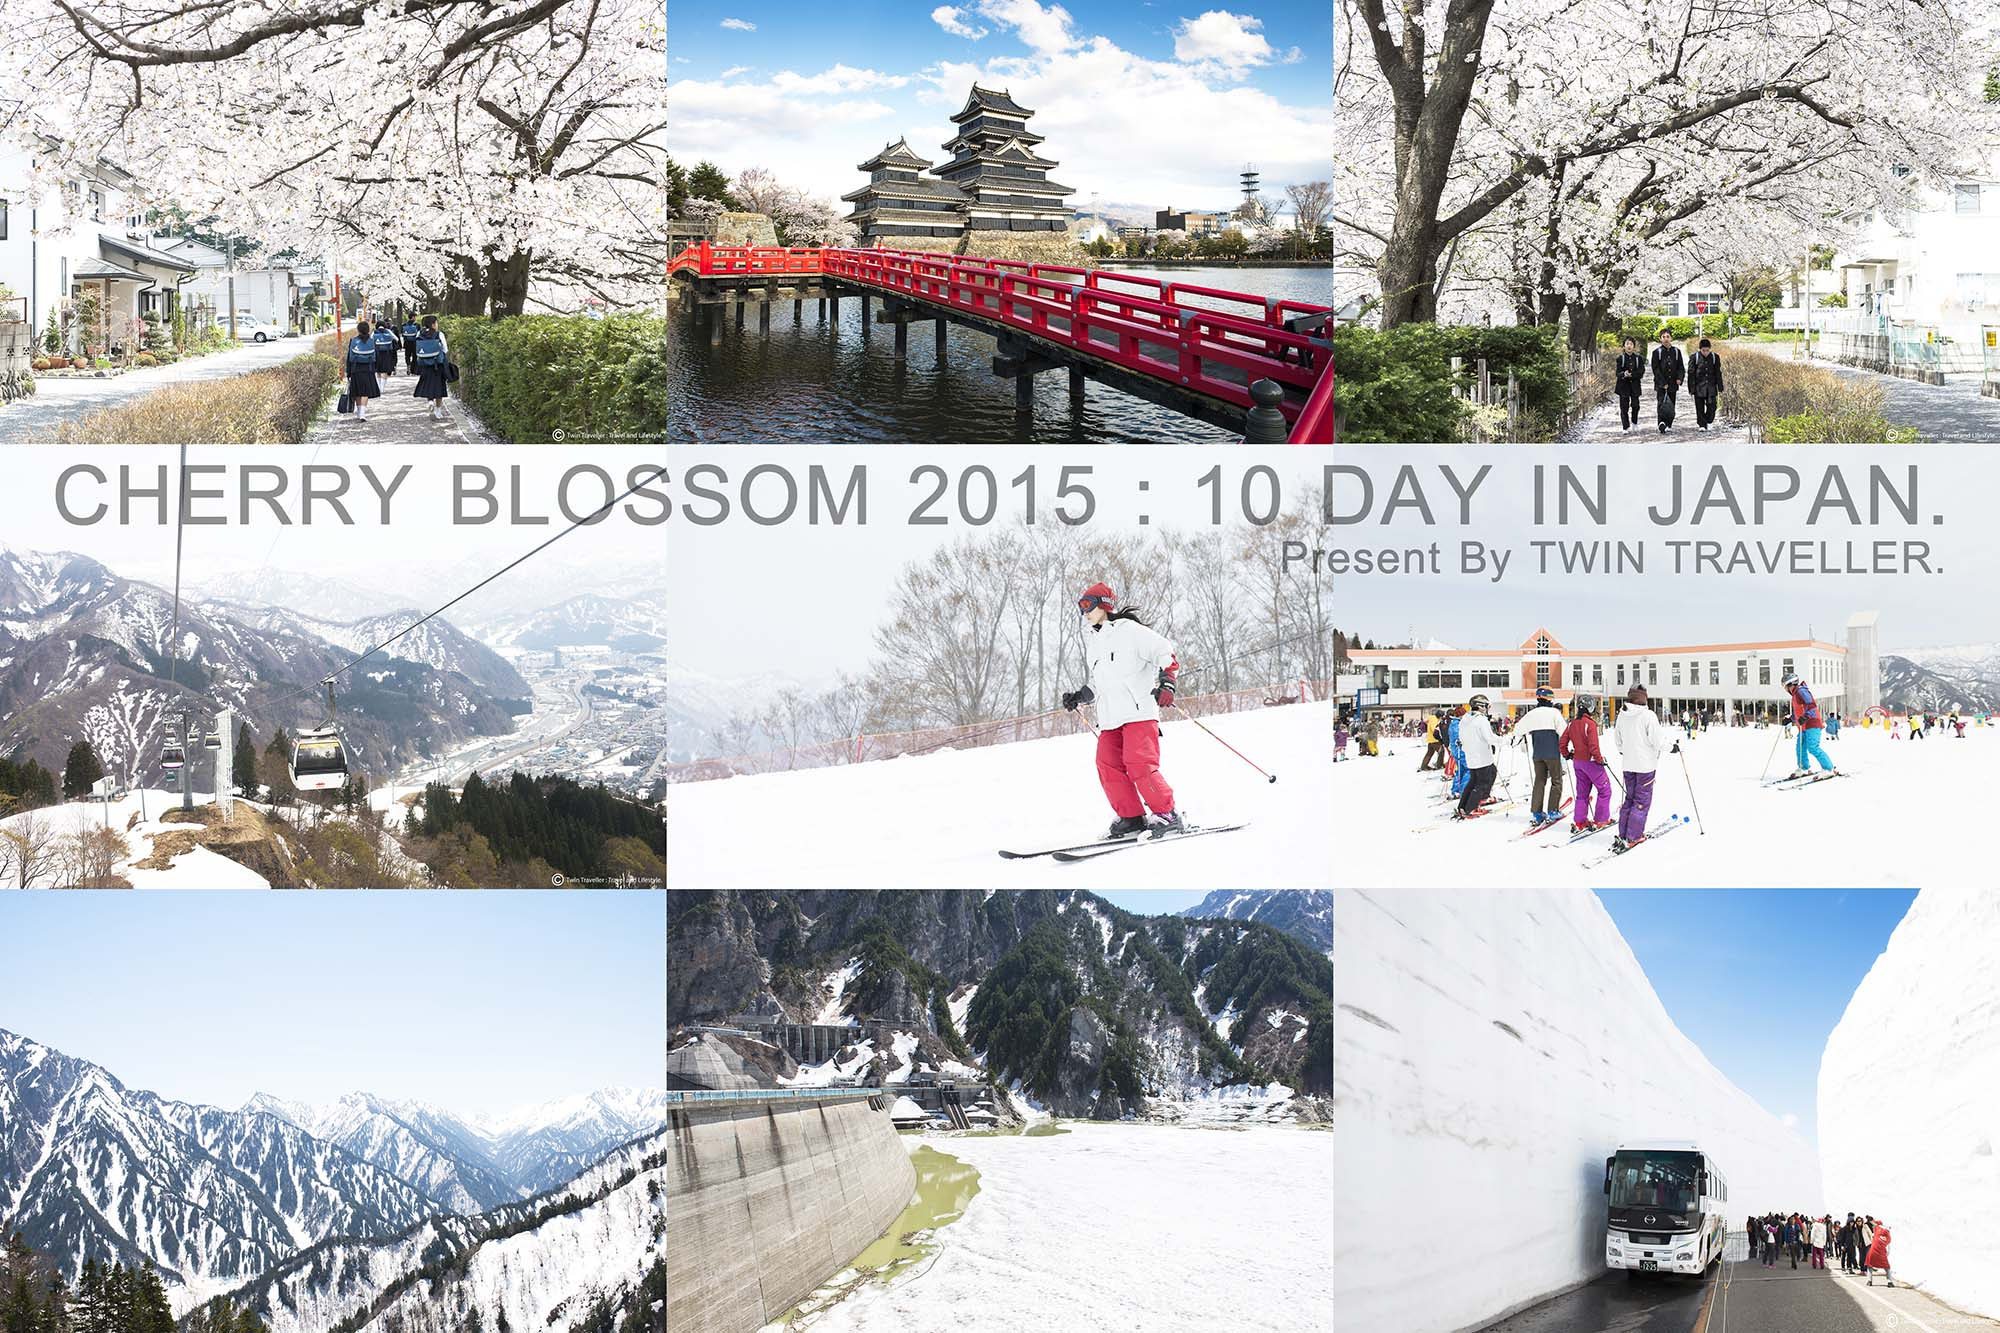 cherry blossom 2015:10 days in japan & interesting places & enjoying